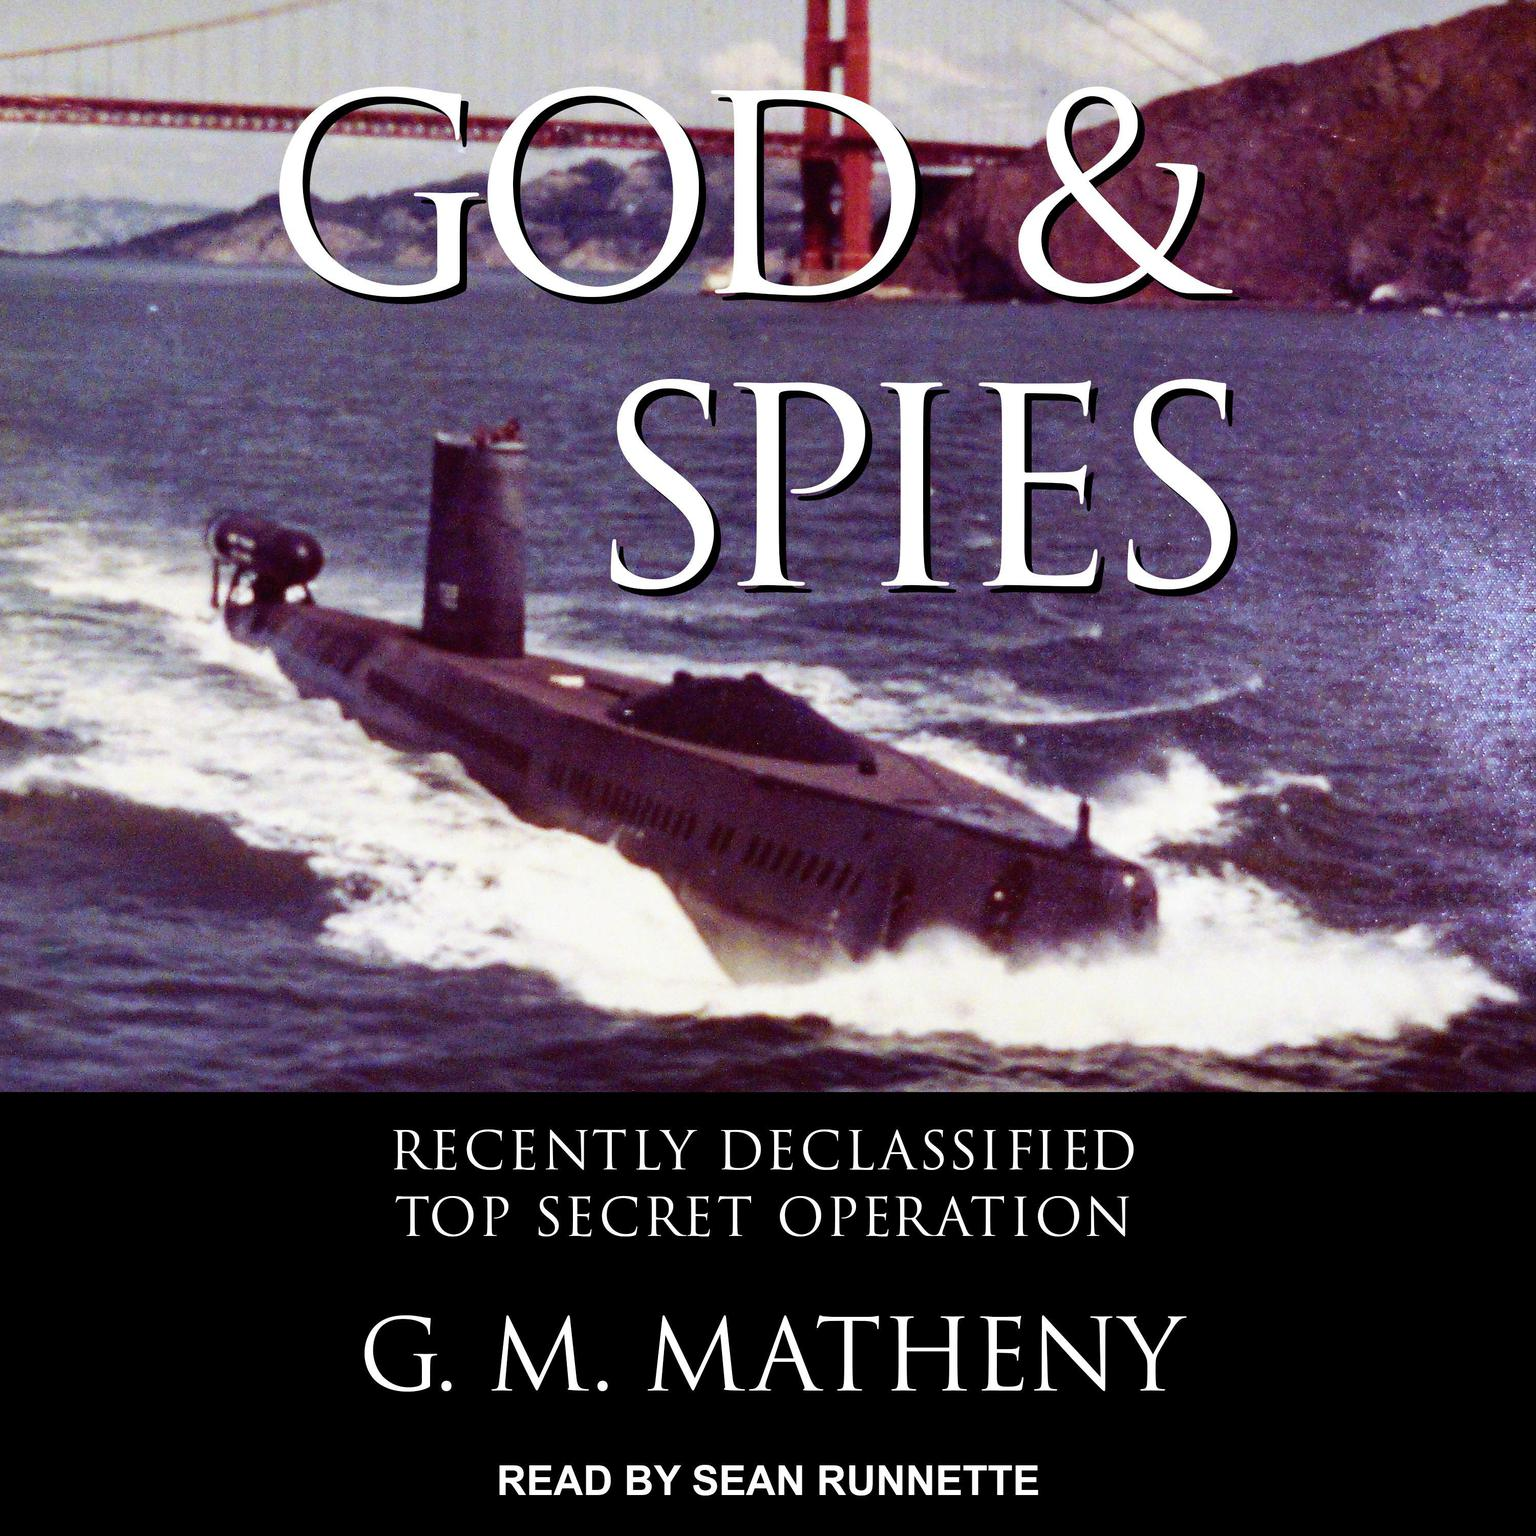 Printable God & Spies: Recently Declassified Top Secret Operation Audiobook Cover Art